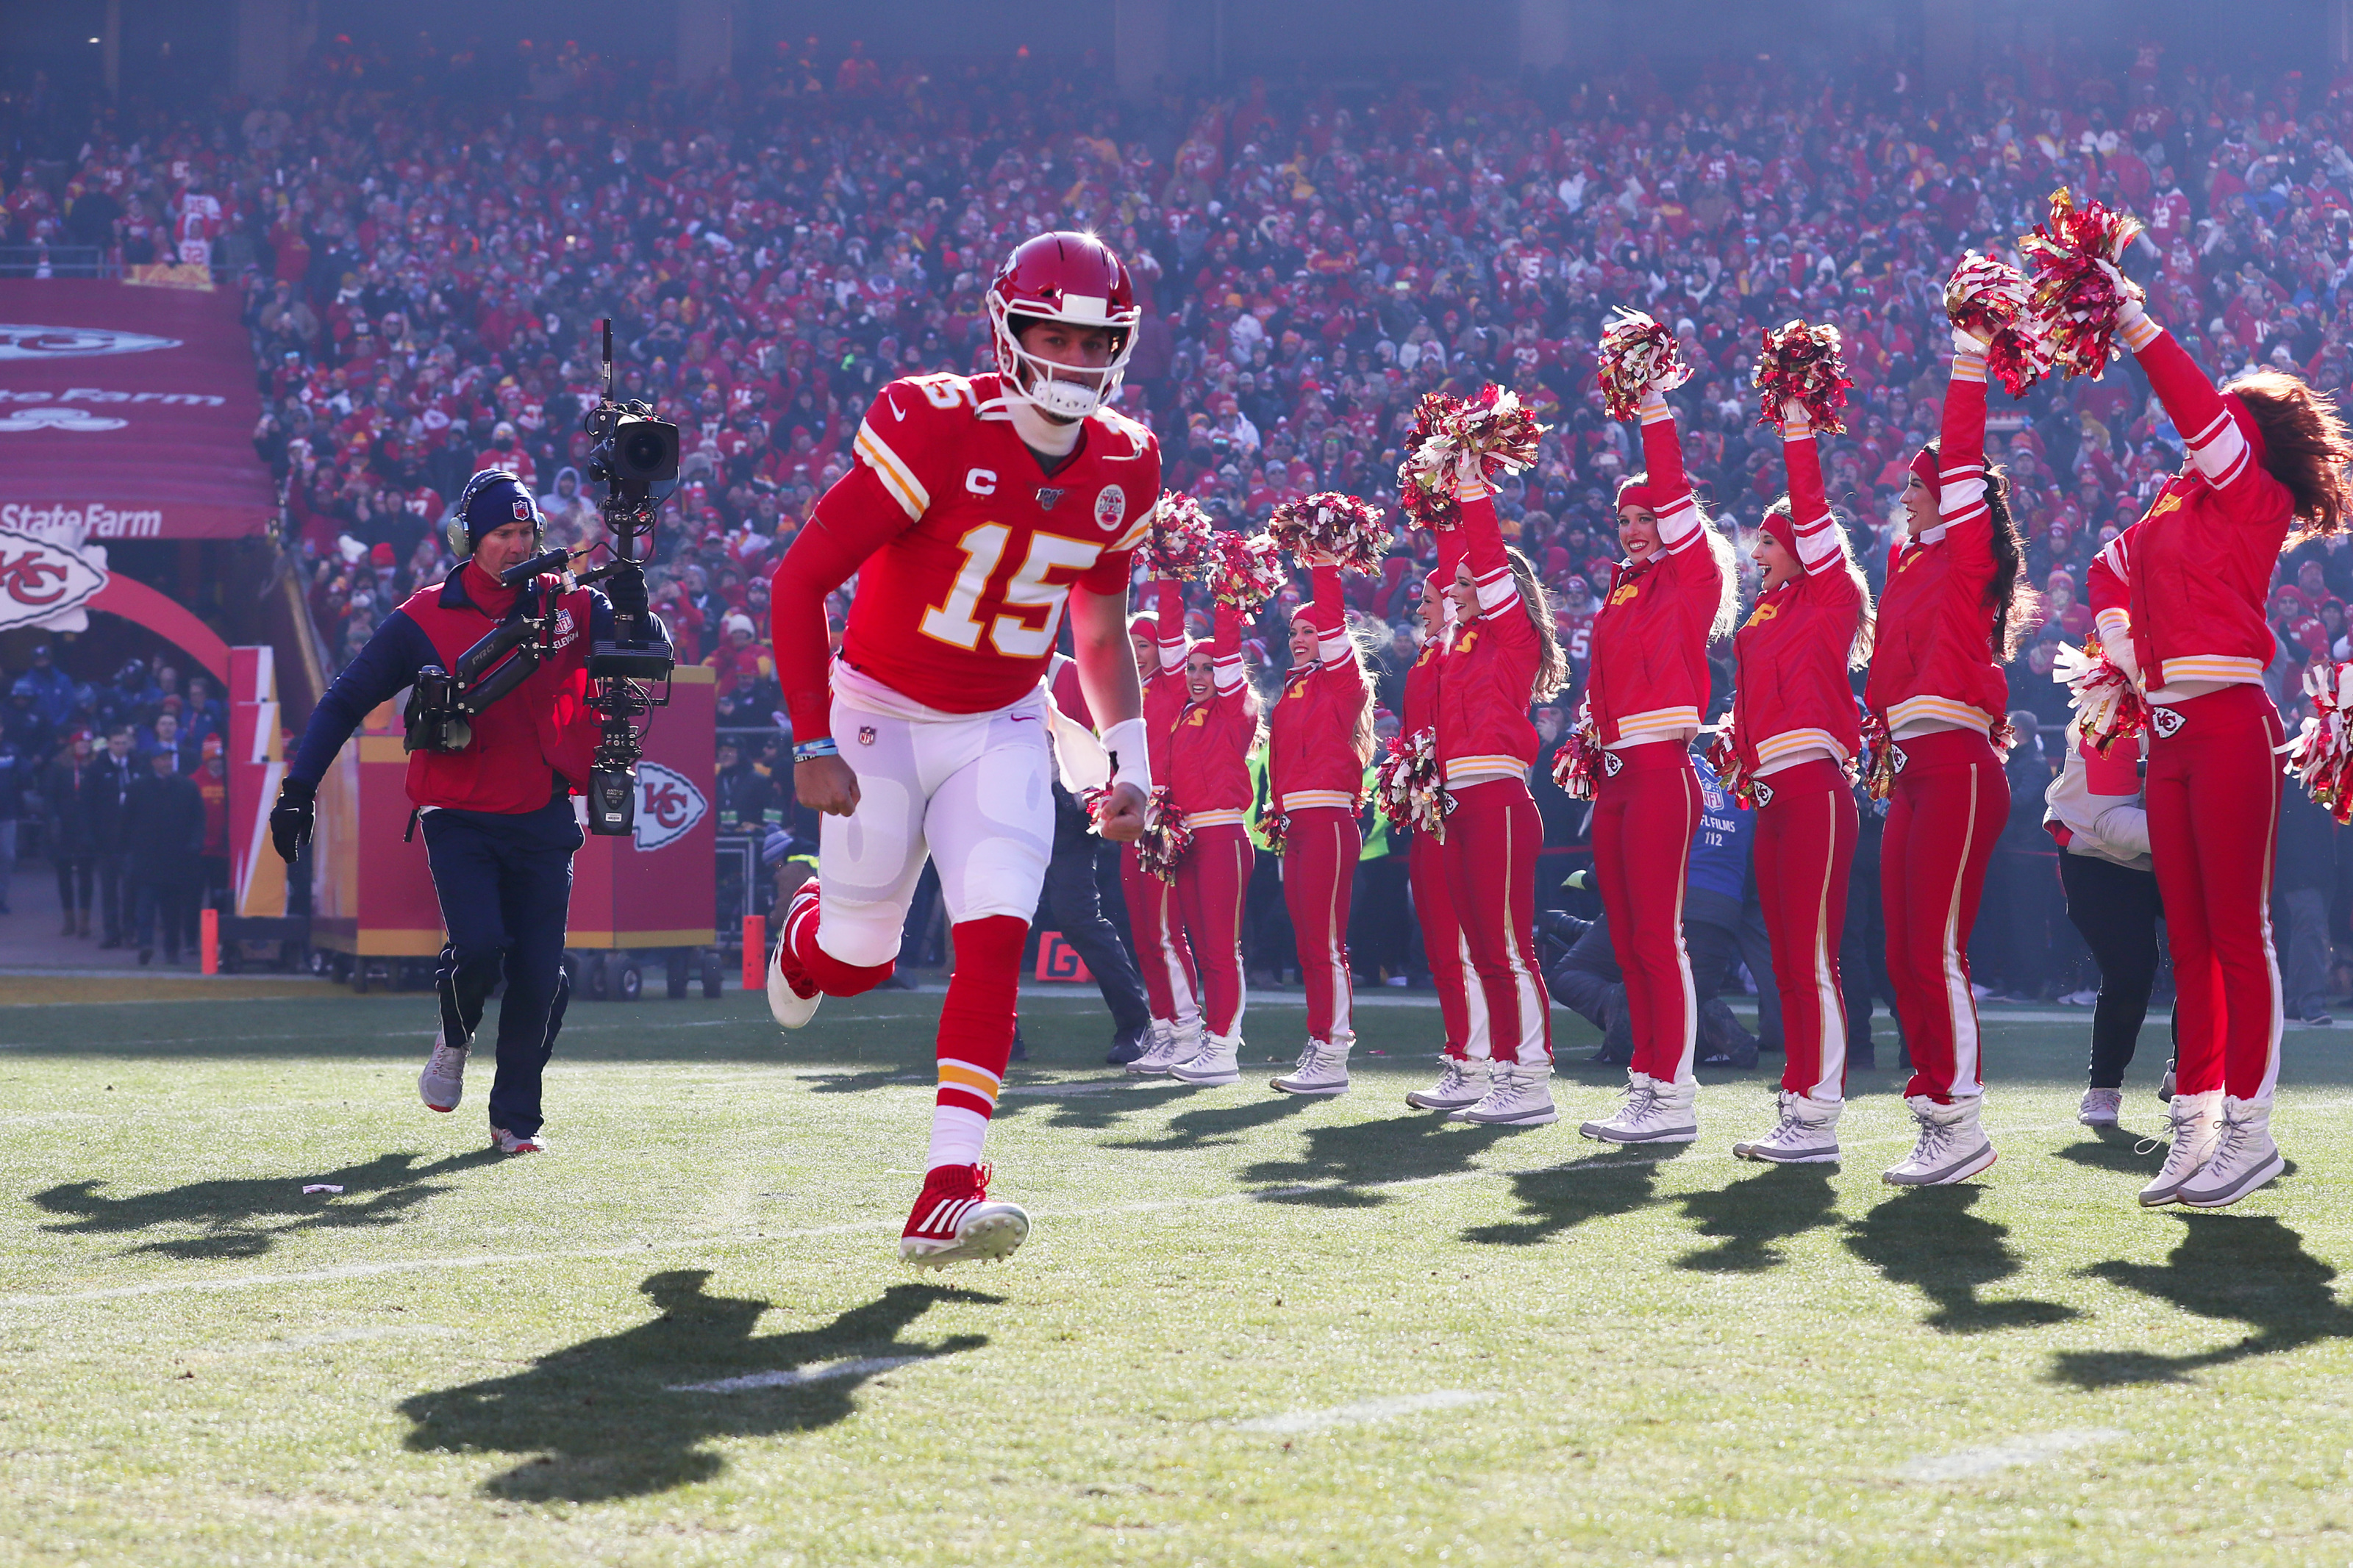 Super Bowl 54 Drafting The Best Starting Roster From 49ers And Chiefs